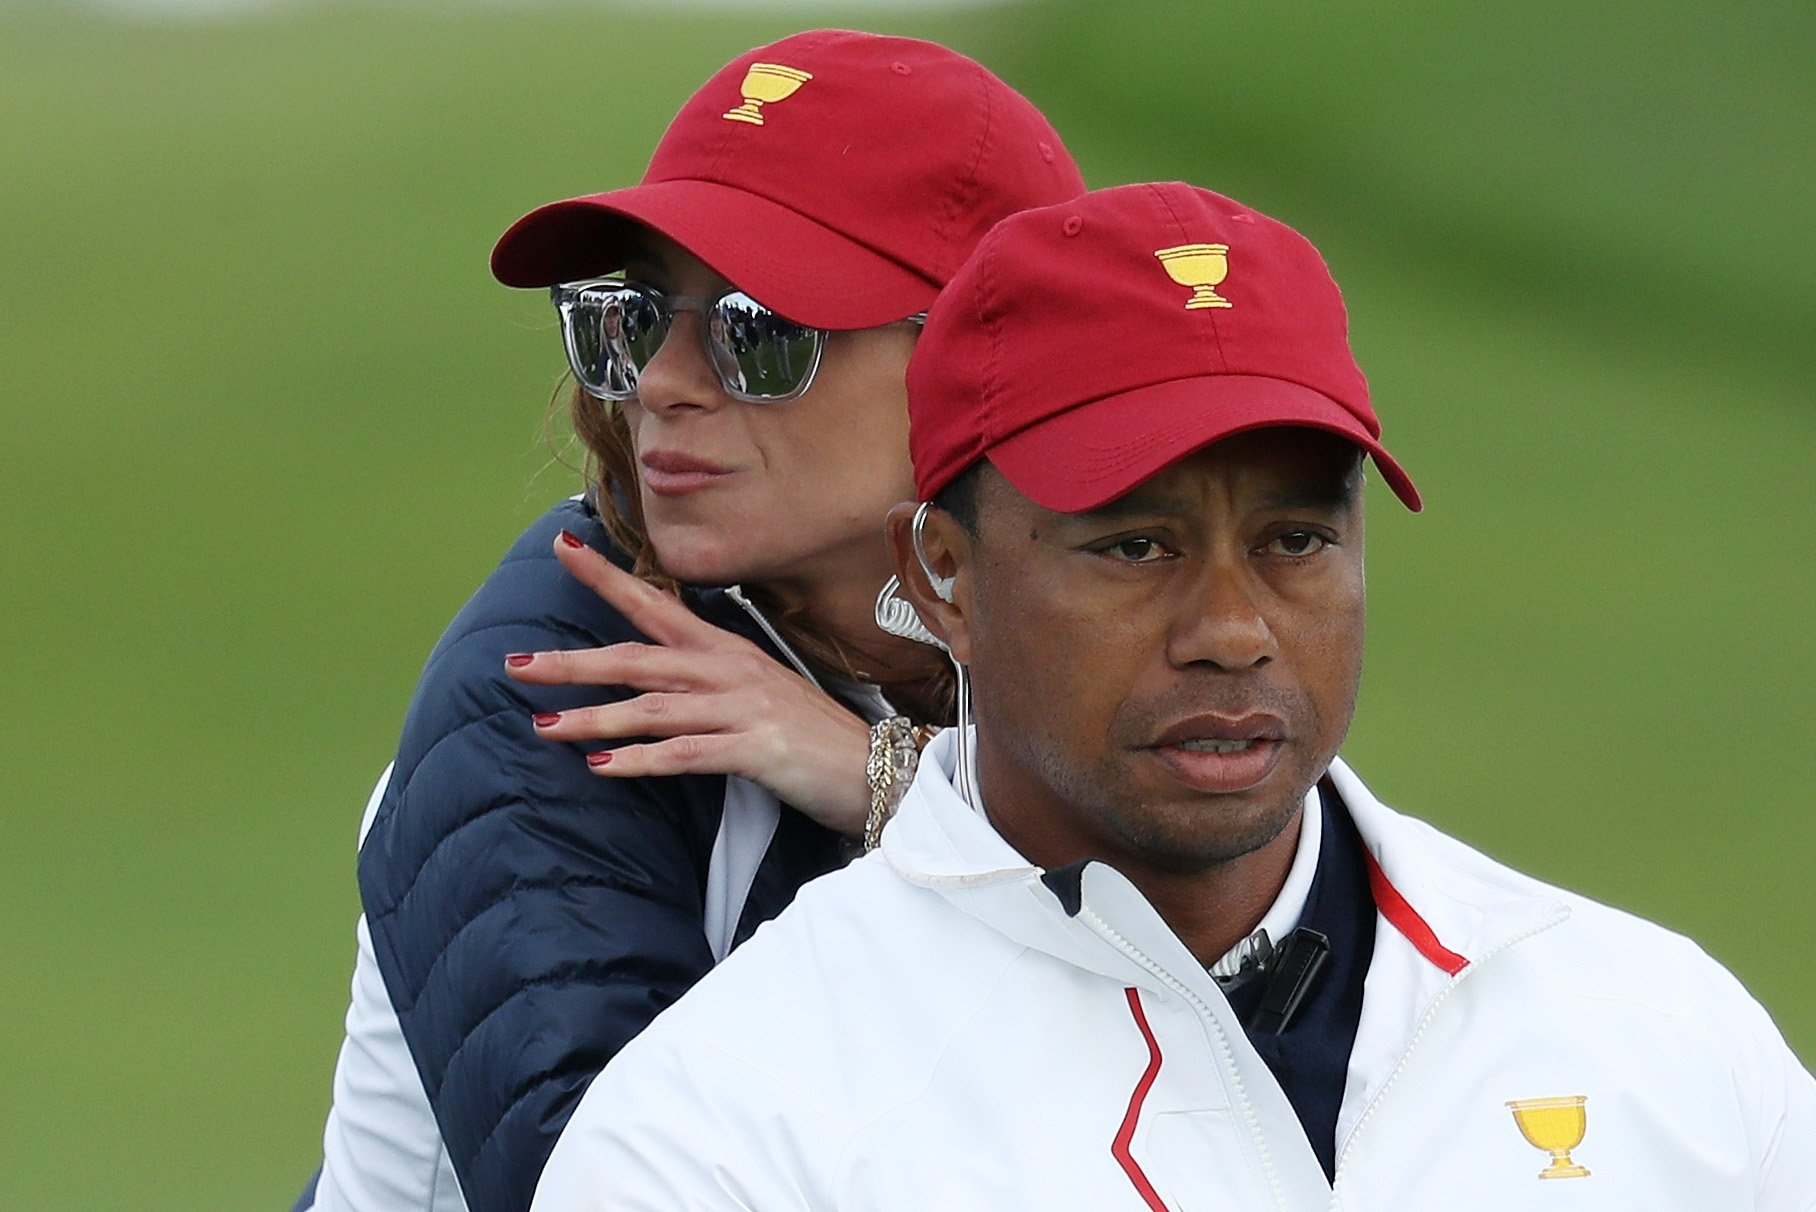 Image Credits: Getty Images /  Rob Carr | Captain's assistant Tiger Woods of the U.S. Team and Erica Herman lok on during Saturday four-ball matches of the Presidents Cup at Liberty National Golf Club on September 30, 2017 in Jersey City, New Jersey.